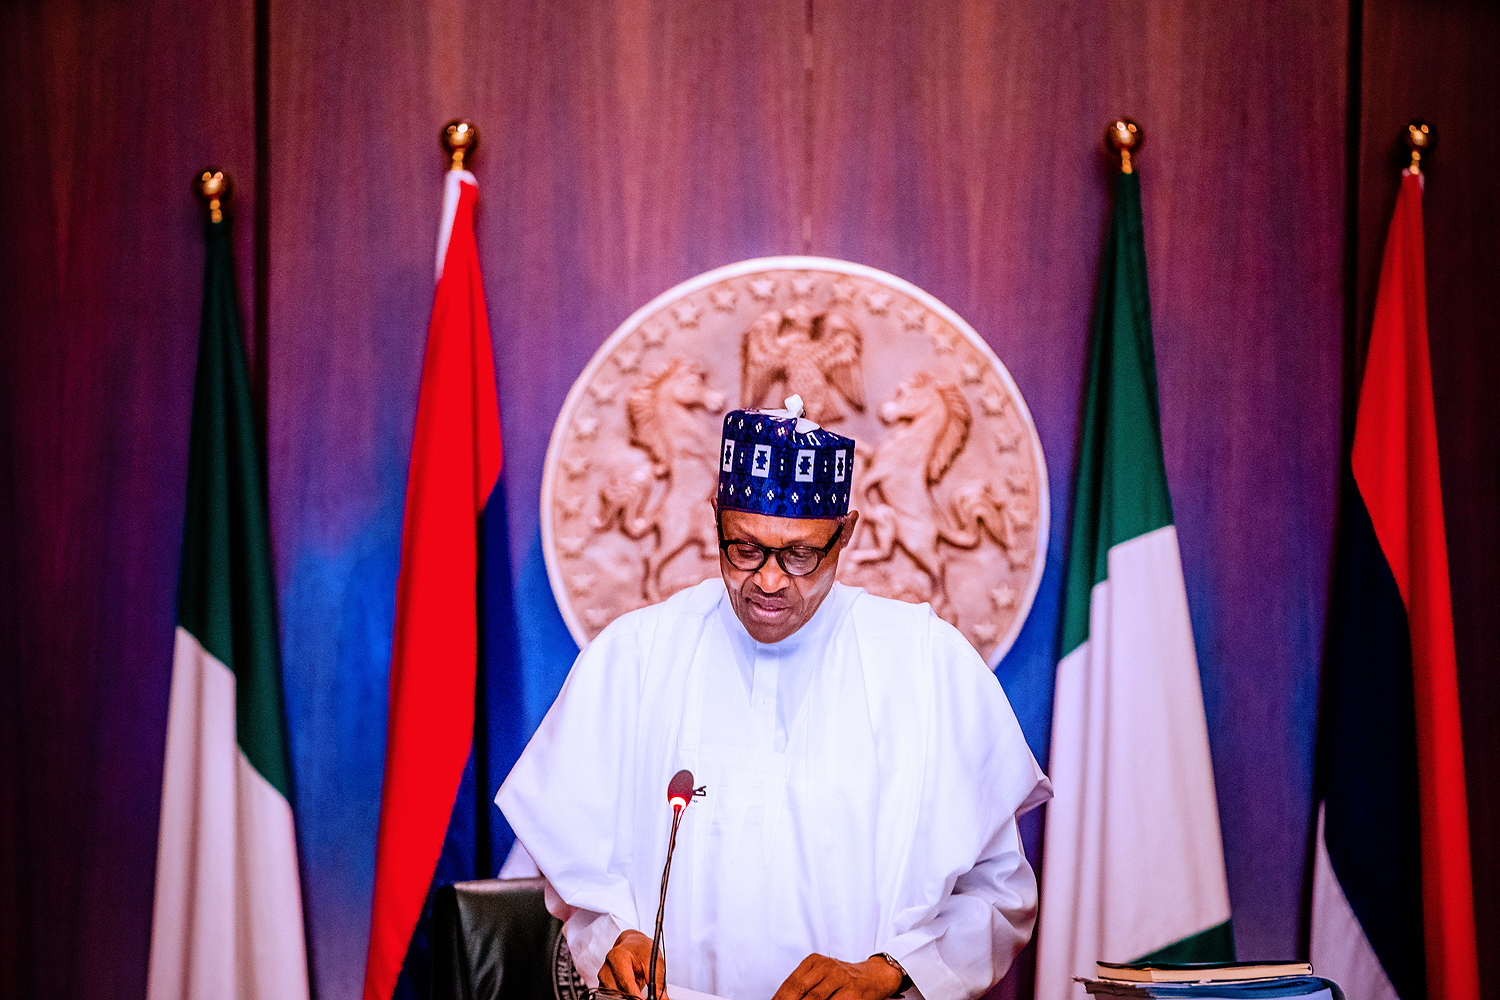 #EndSARS: Don't aggravate the situation, Buhari warns security agencies